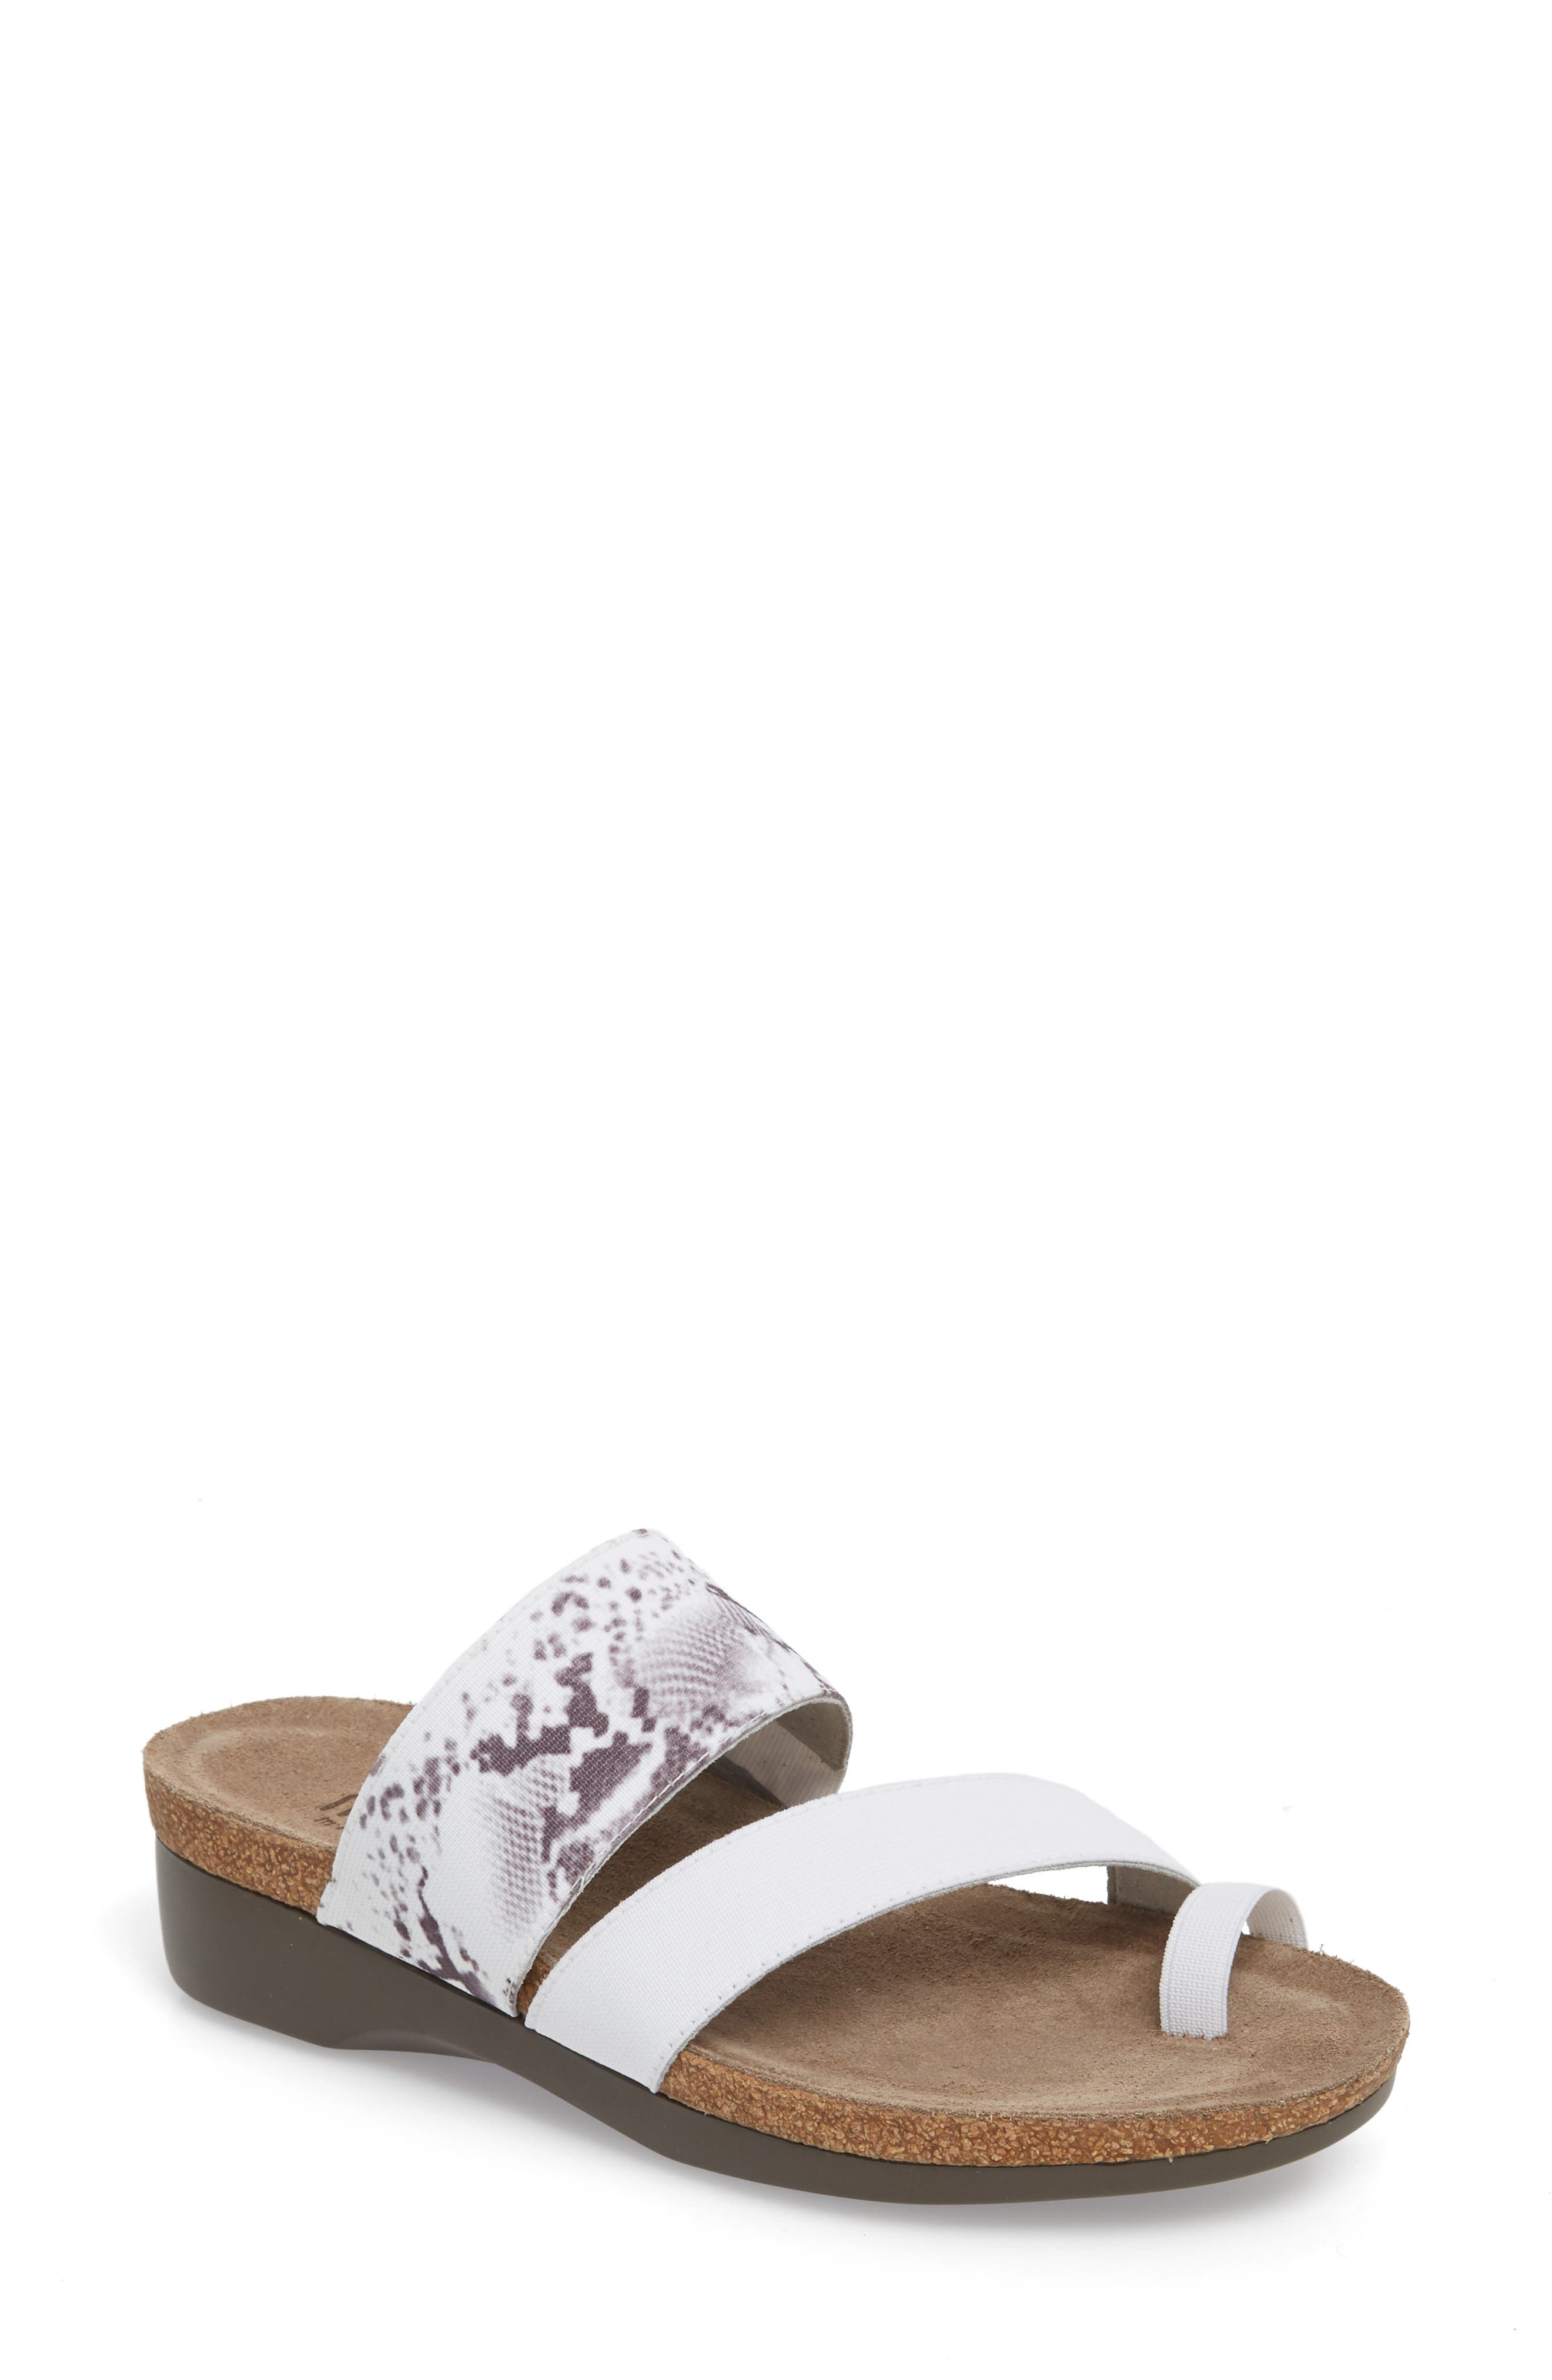 'Aries' Sandal,                         Main,                         color, WHITE SNAKE PRINT LEATHER